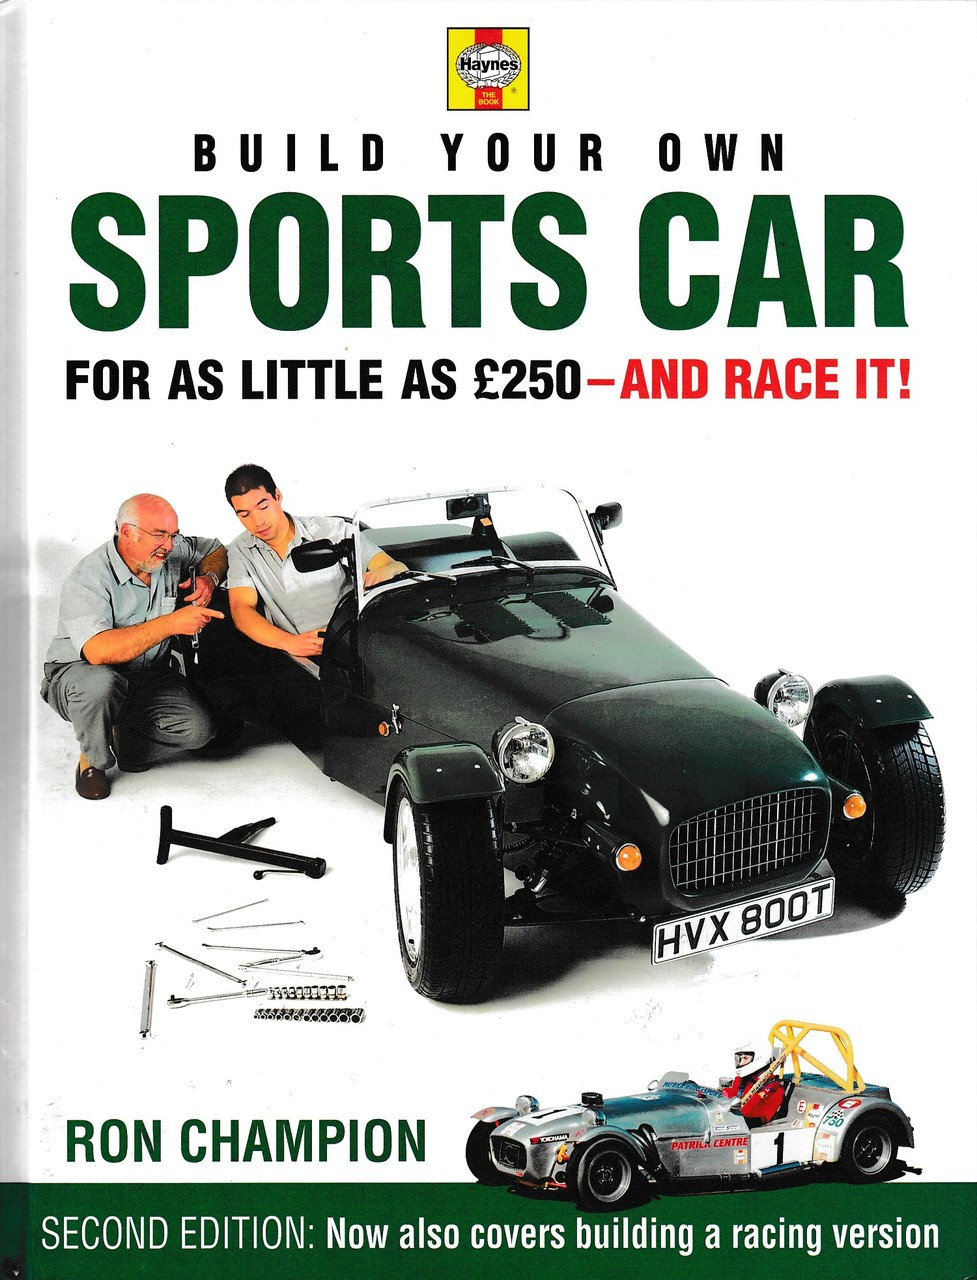 Build Your Car >> Build Your Own Sports Car For As Little As 250 Pounds And Race It